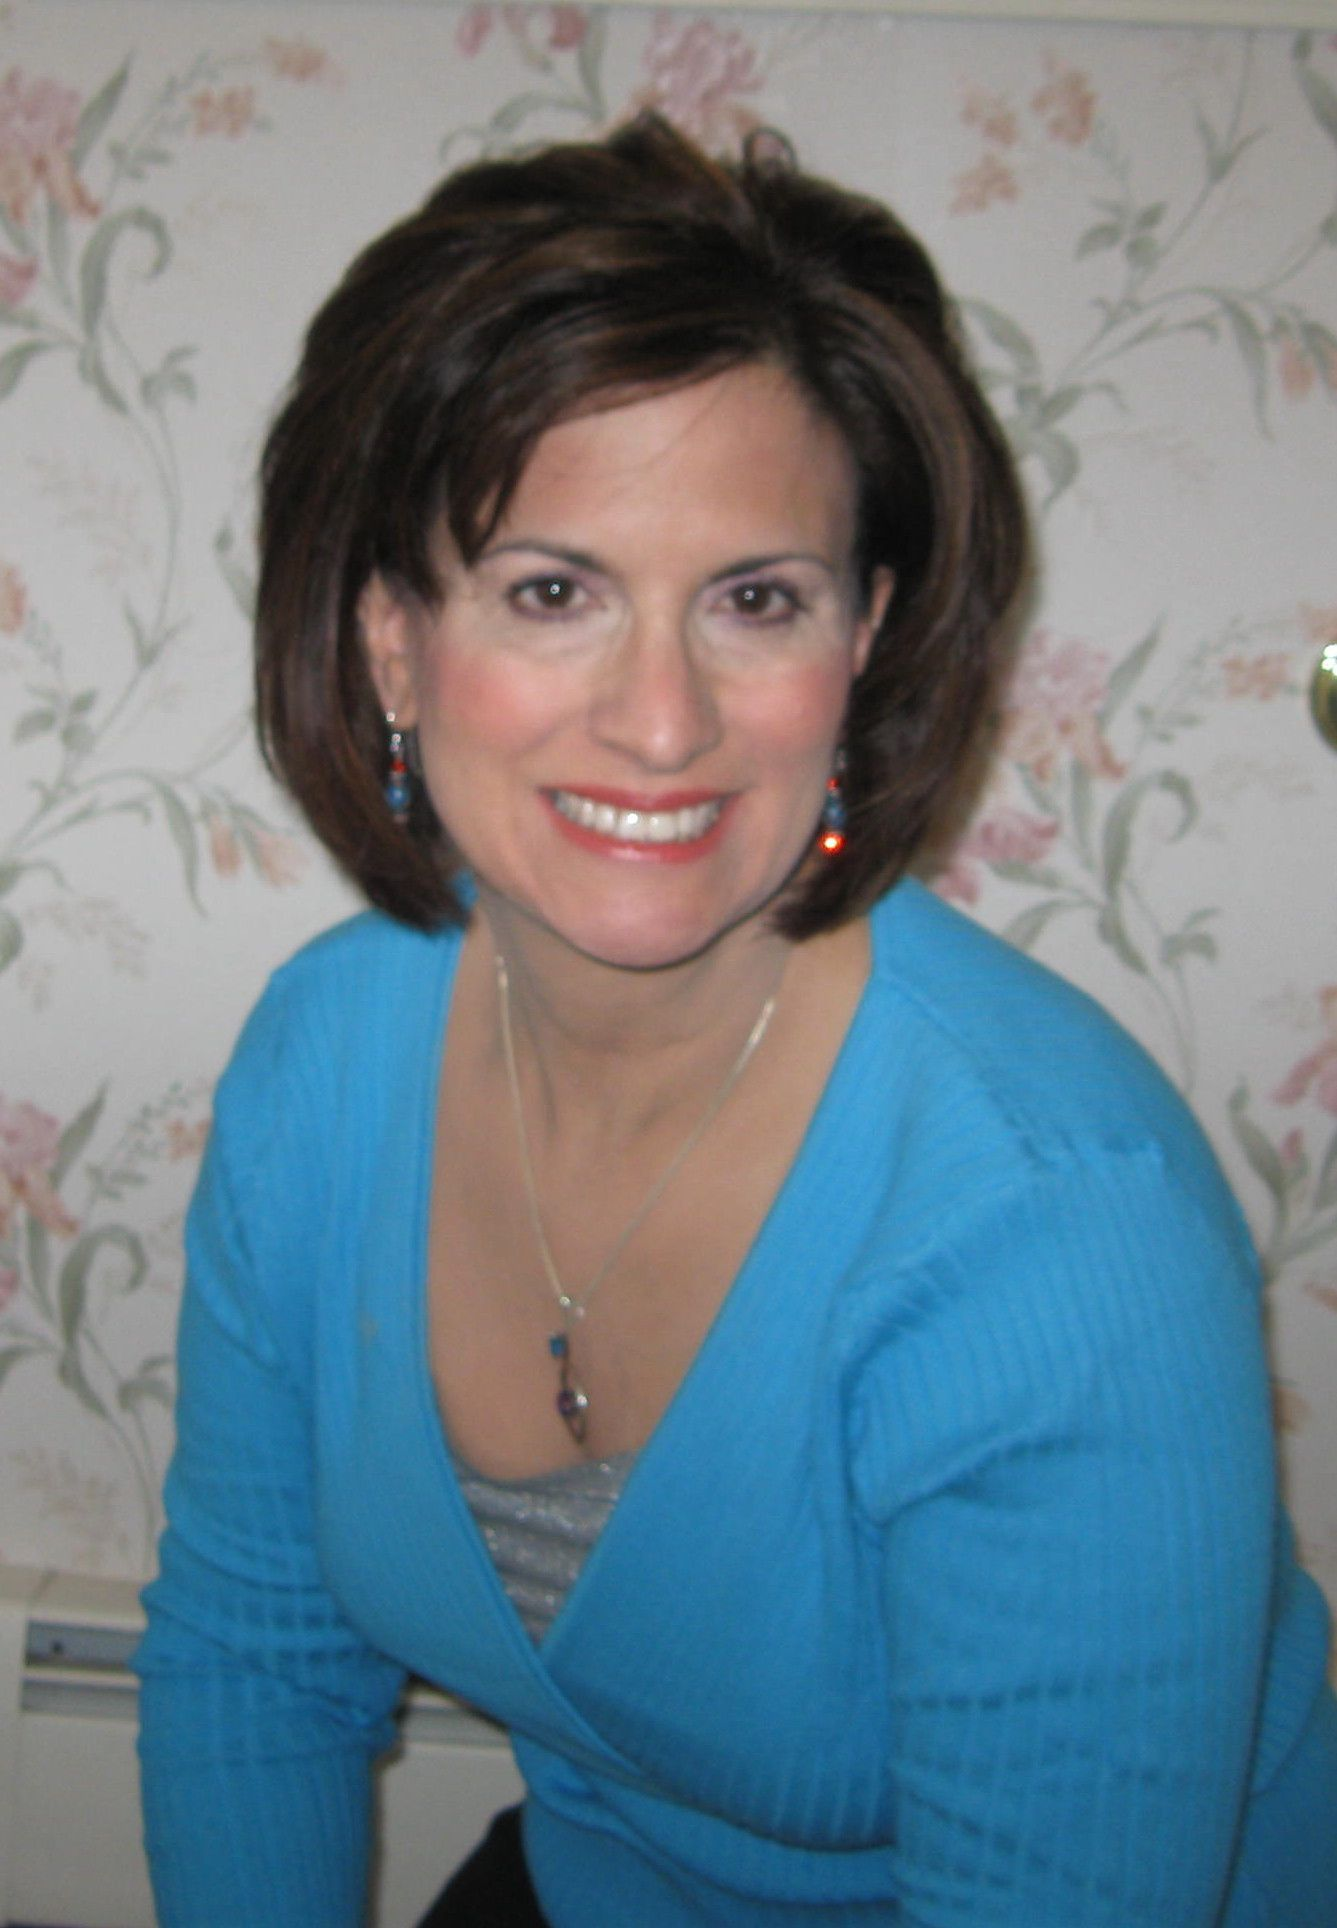 new fairfield jewish girl personals Single jewish female help i can't find an emotionally mature, ambitious guy who's ready to commit to marriage by rebbetzin feige twerski dear rebbetzin feige, i'm a single jewish 30-something woman looking for my soul mate and for the life of me i cannot find a solid jewish mensch who, i hate to say it, is emotionally mature.